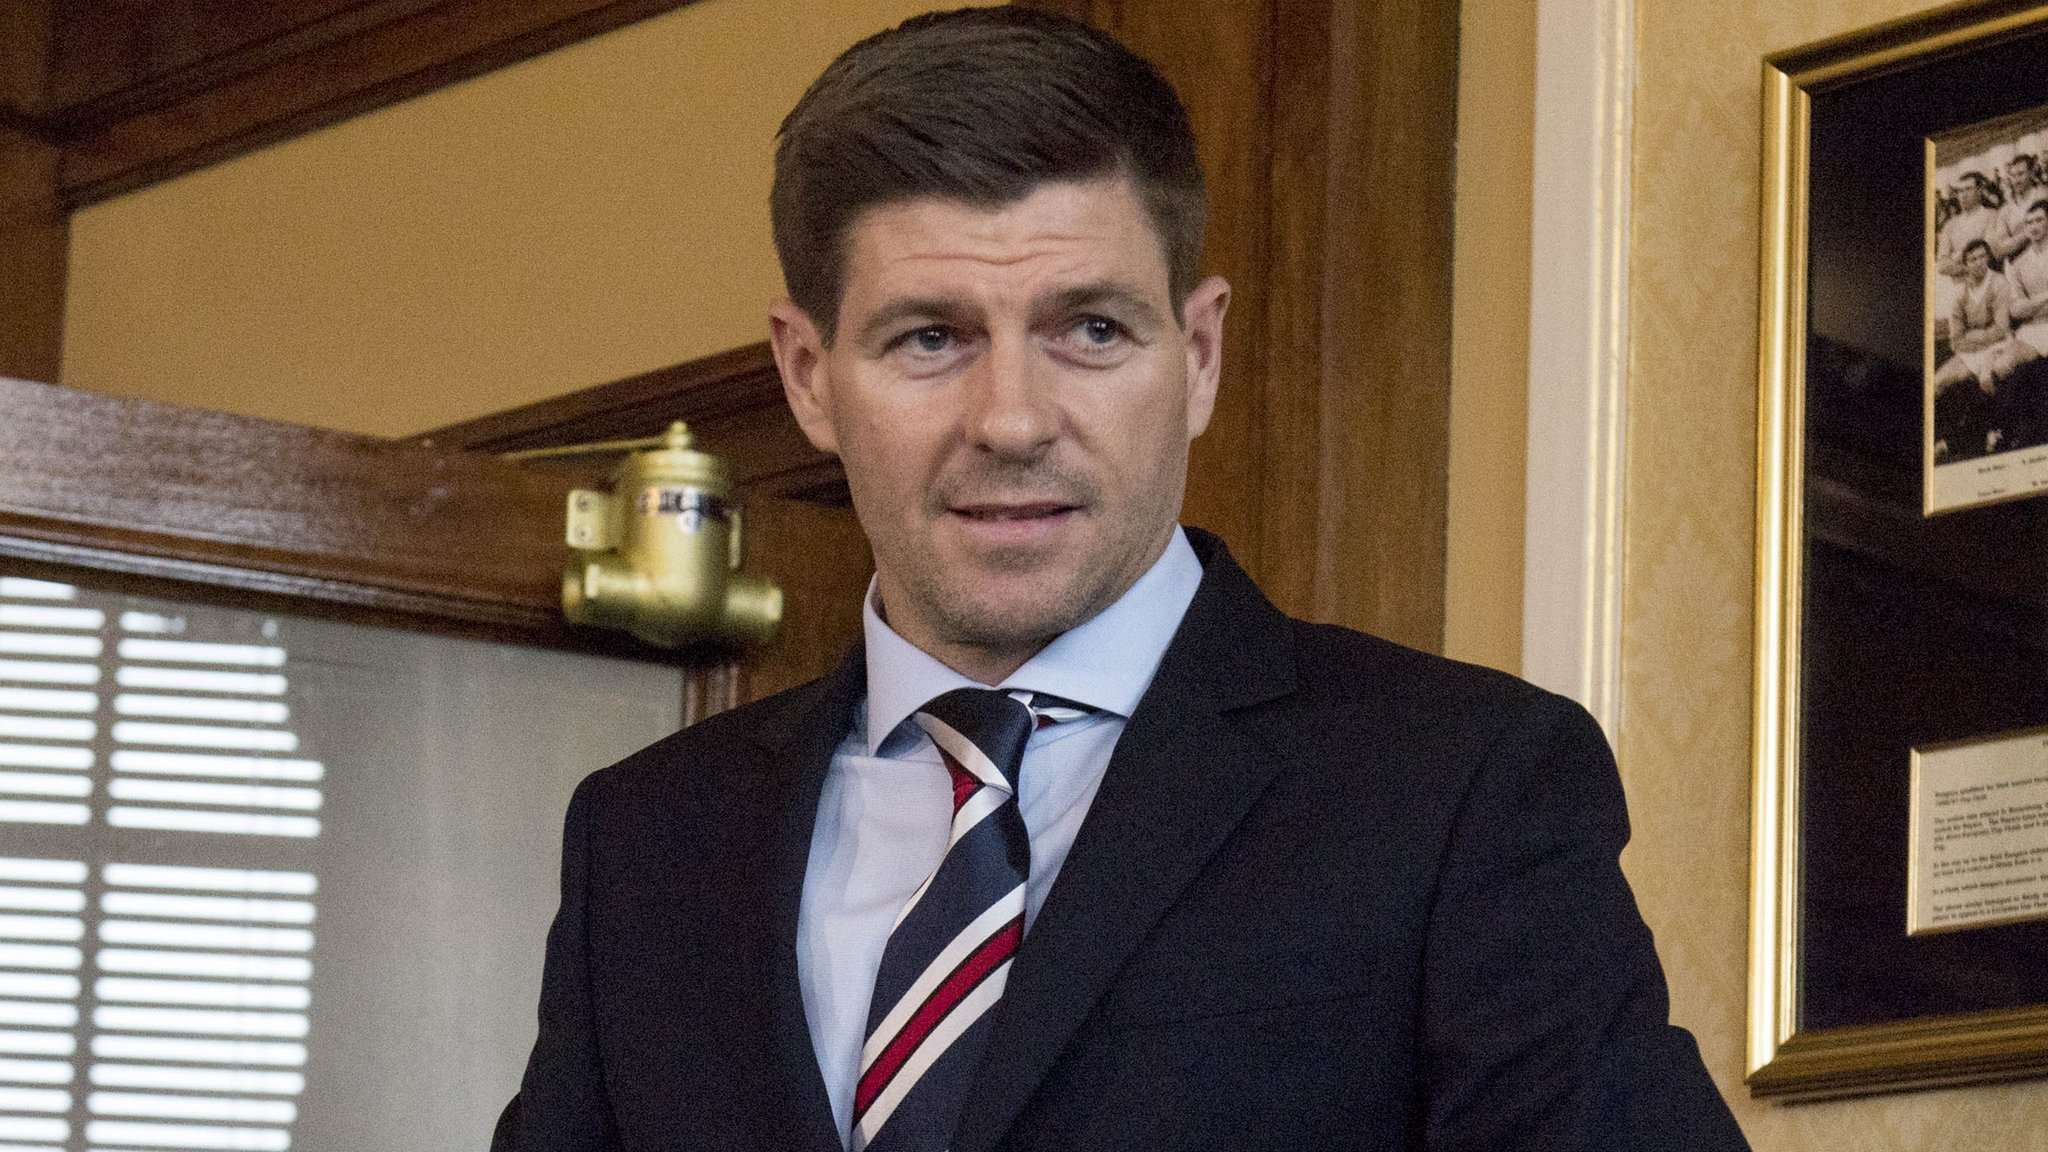 Rangers: Closing gap on Celtic should be Steven Gerrard's first target - David Weir